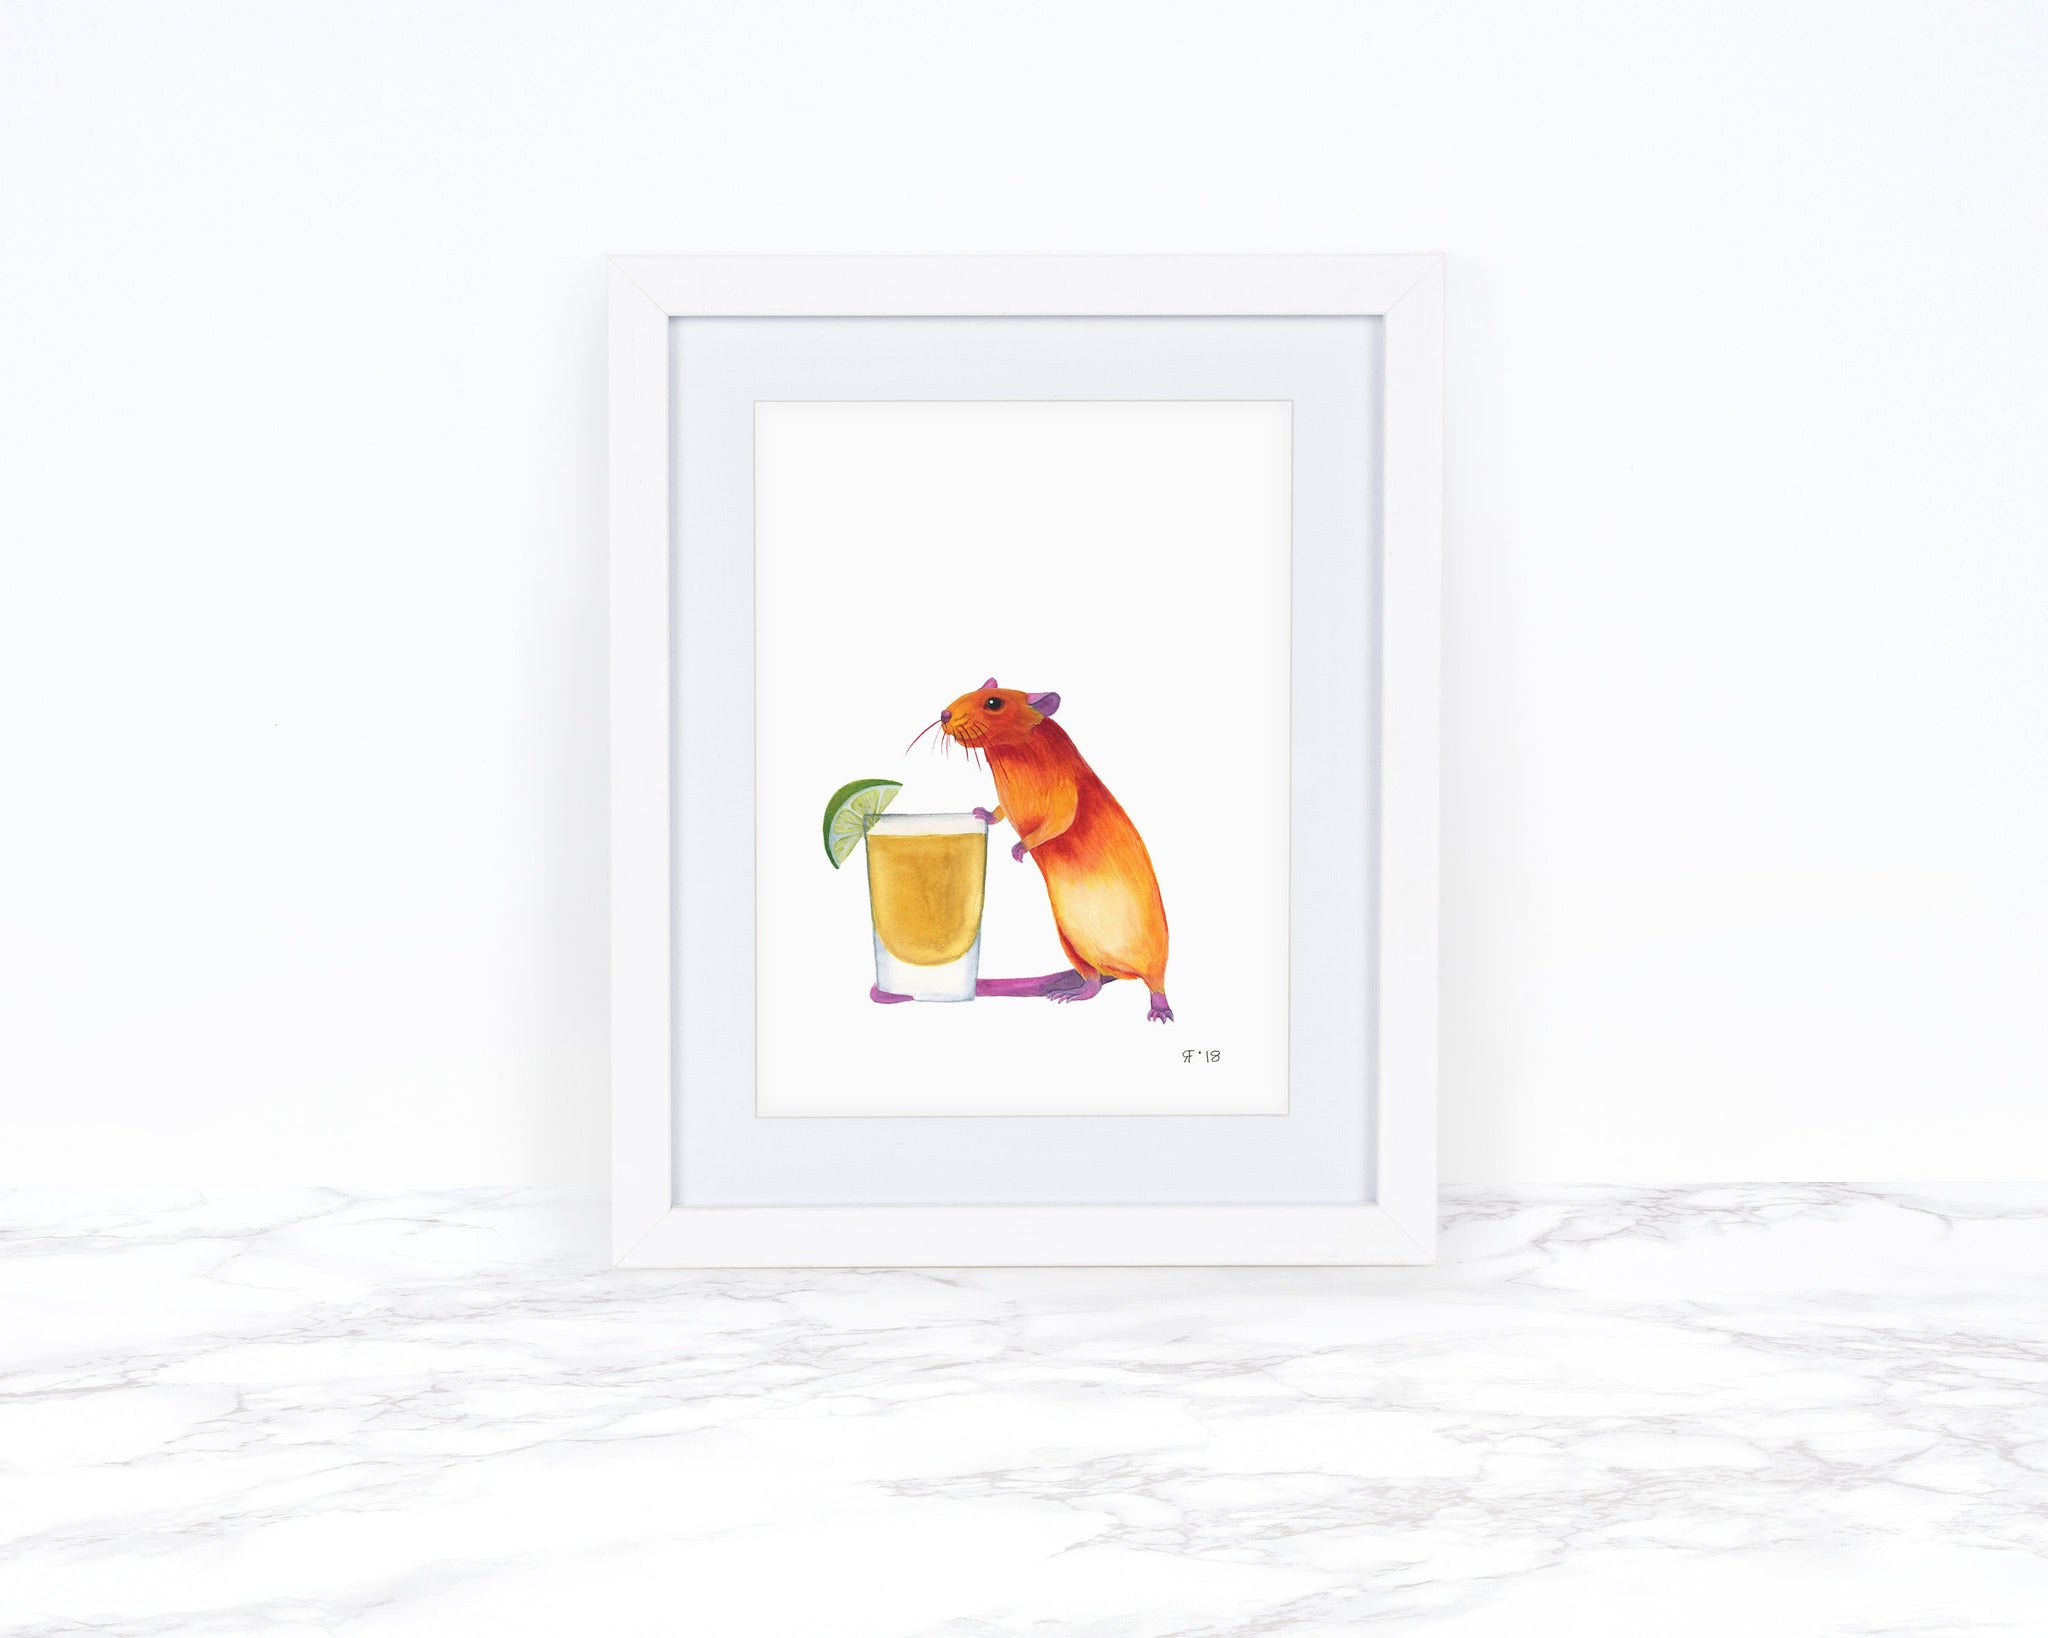 Pet Rat Art Print, Whimsical Art Print, Kitchen Wall Art, Kitchen Art Print, Whimsical Animal Art Print, Watercolor Painting, Tequila Art